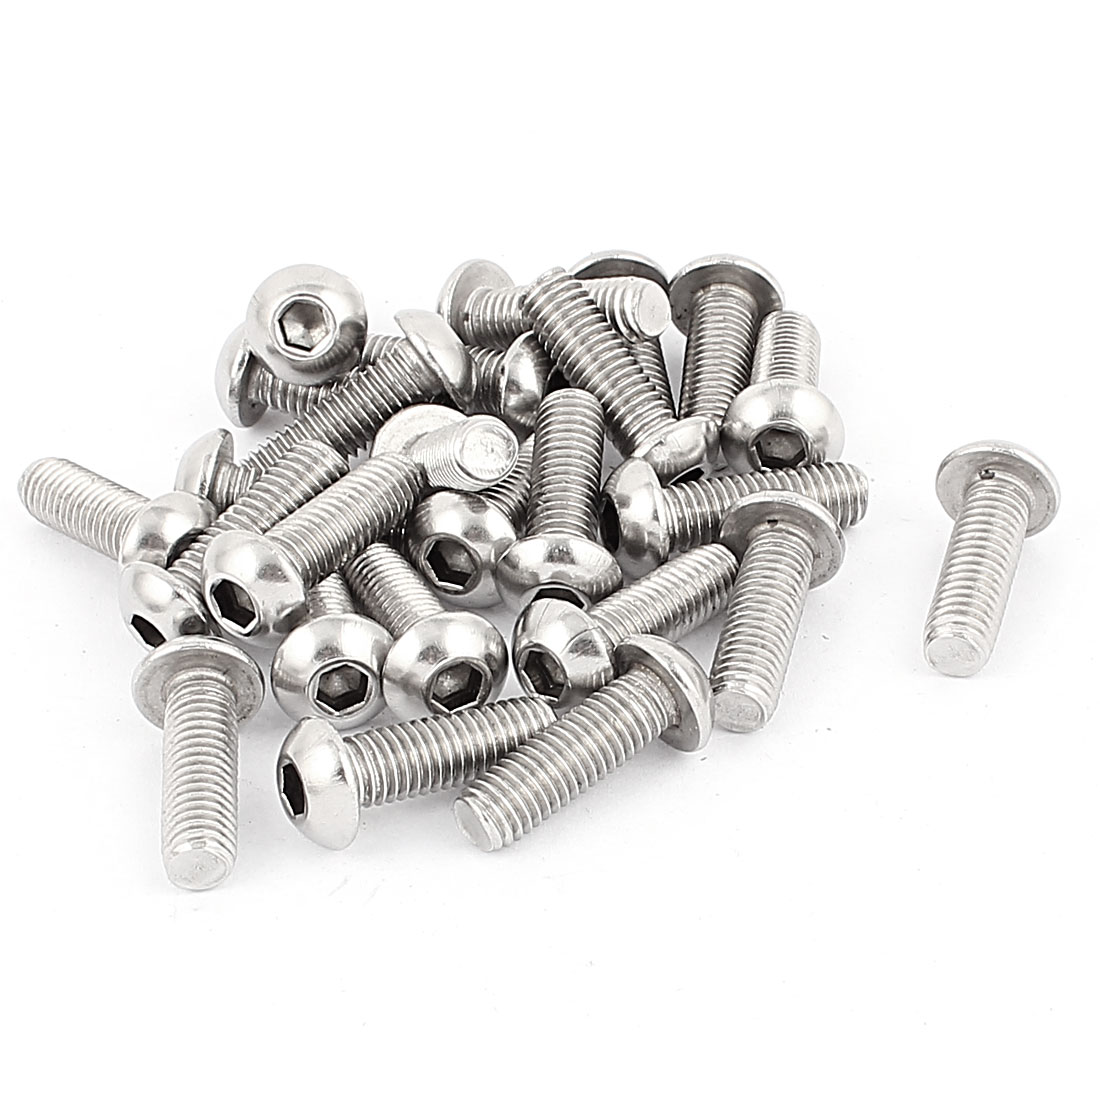 Full Thread Stainless Steel Button Head Socket Cap Screw Silver Tone M8 x 25mm 25 Pcs